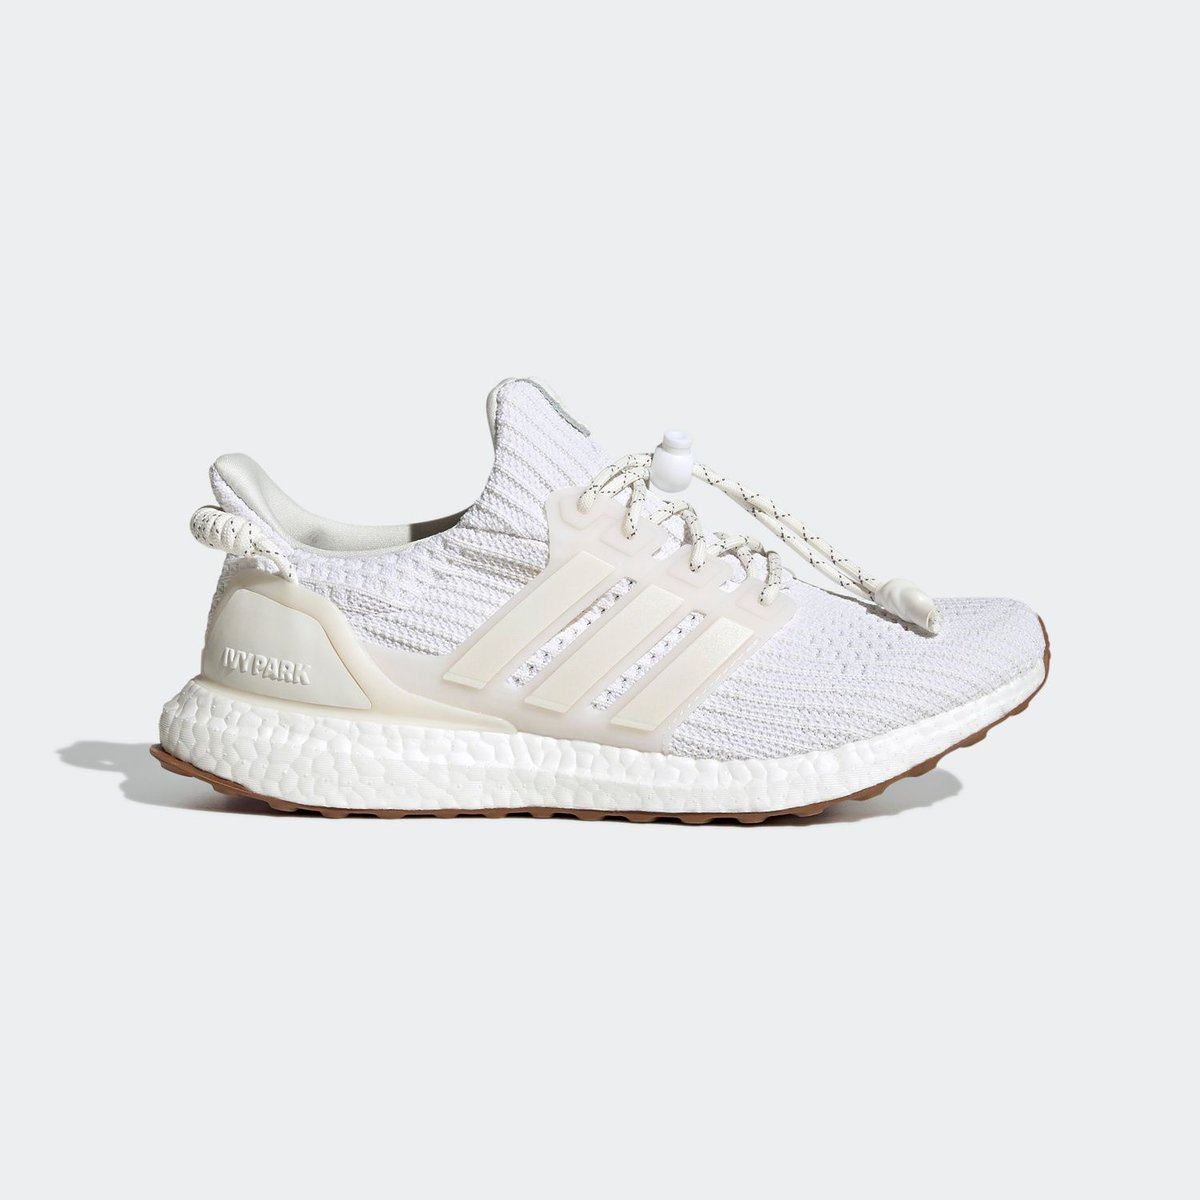 Sizes 4-11.5 on @footlocker. Ivy Park x adidas Ultra Boost 4.0.   3